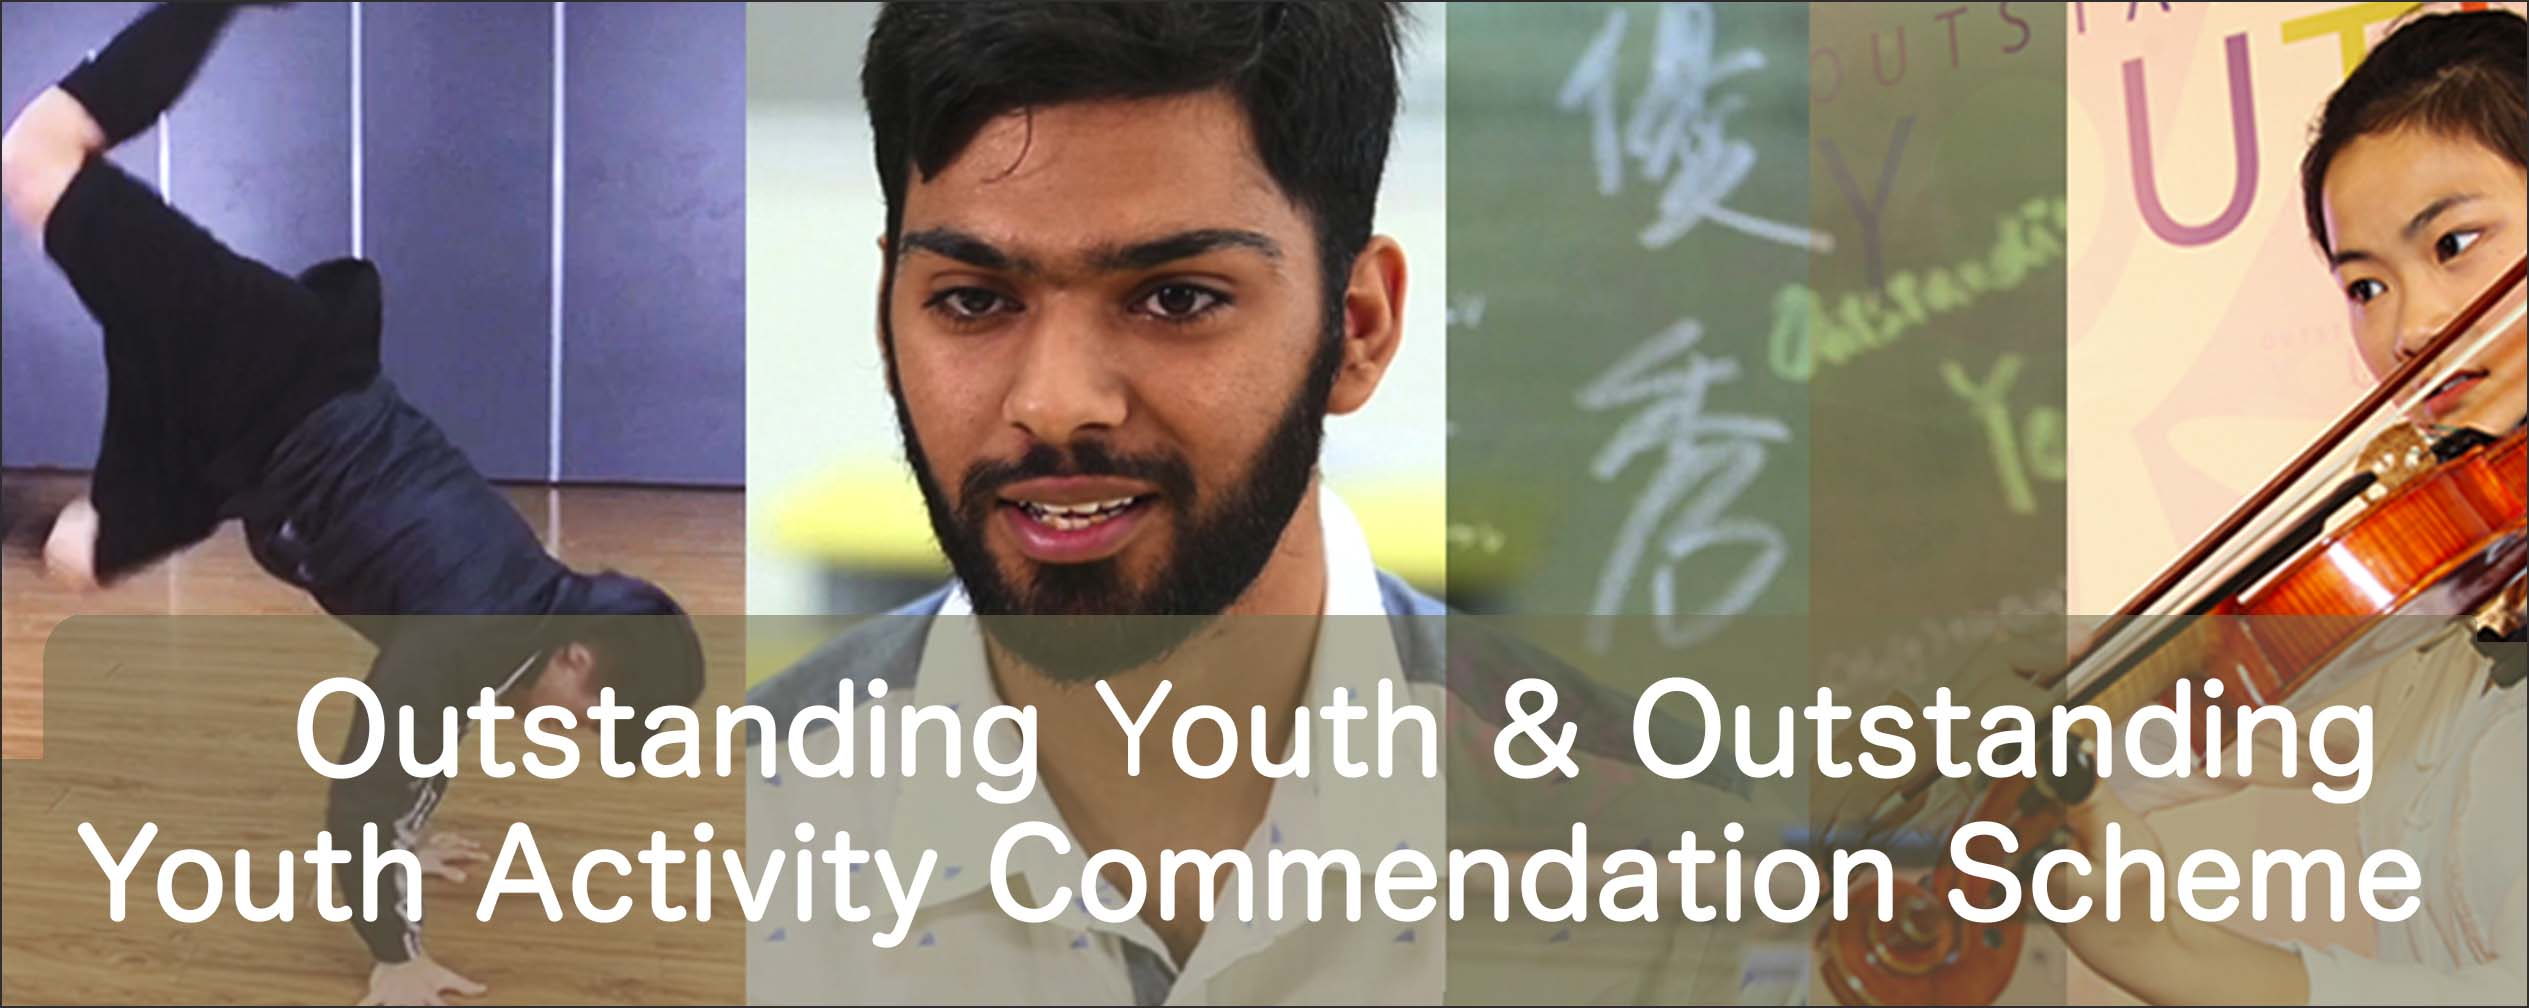 Outstanding Youth & Outstanding Youth Activity Commendation Scheme